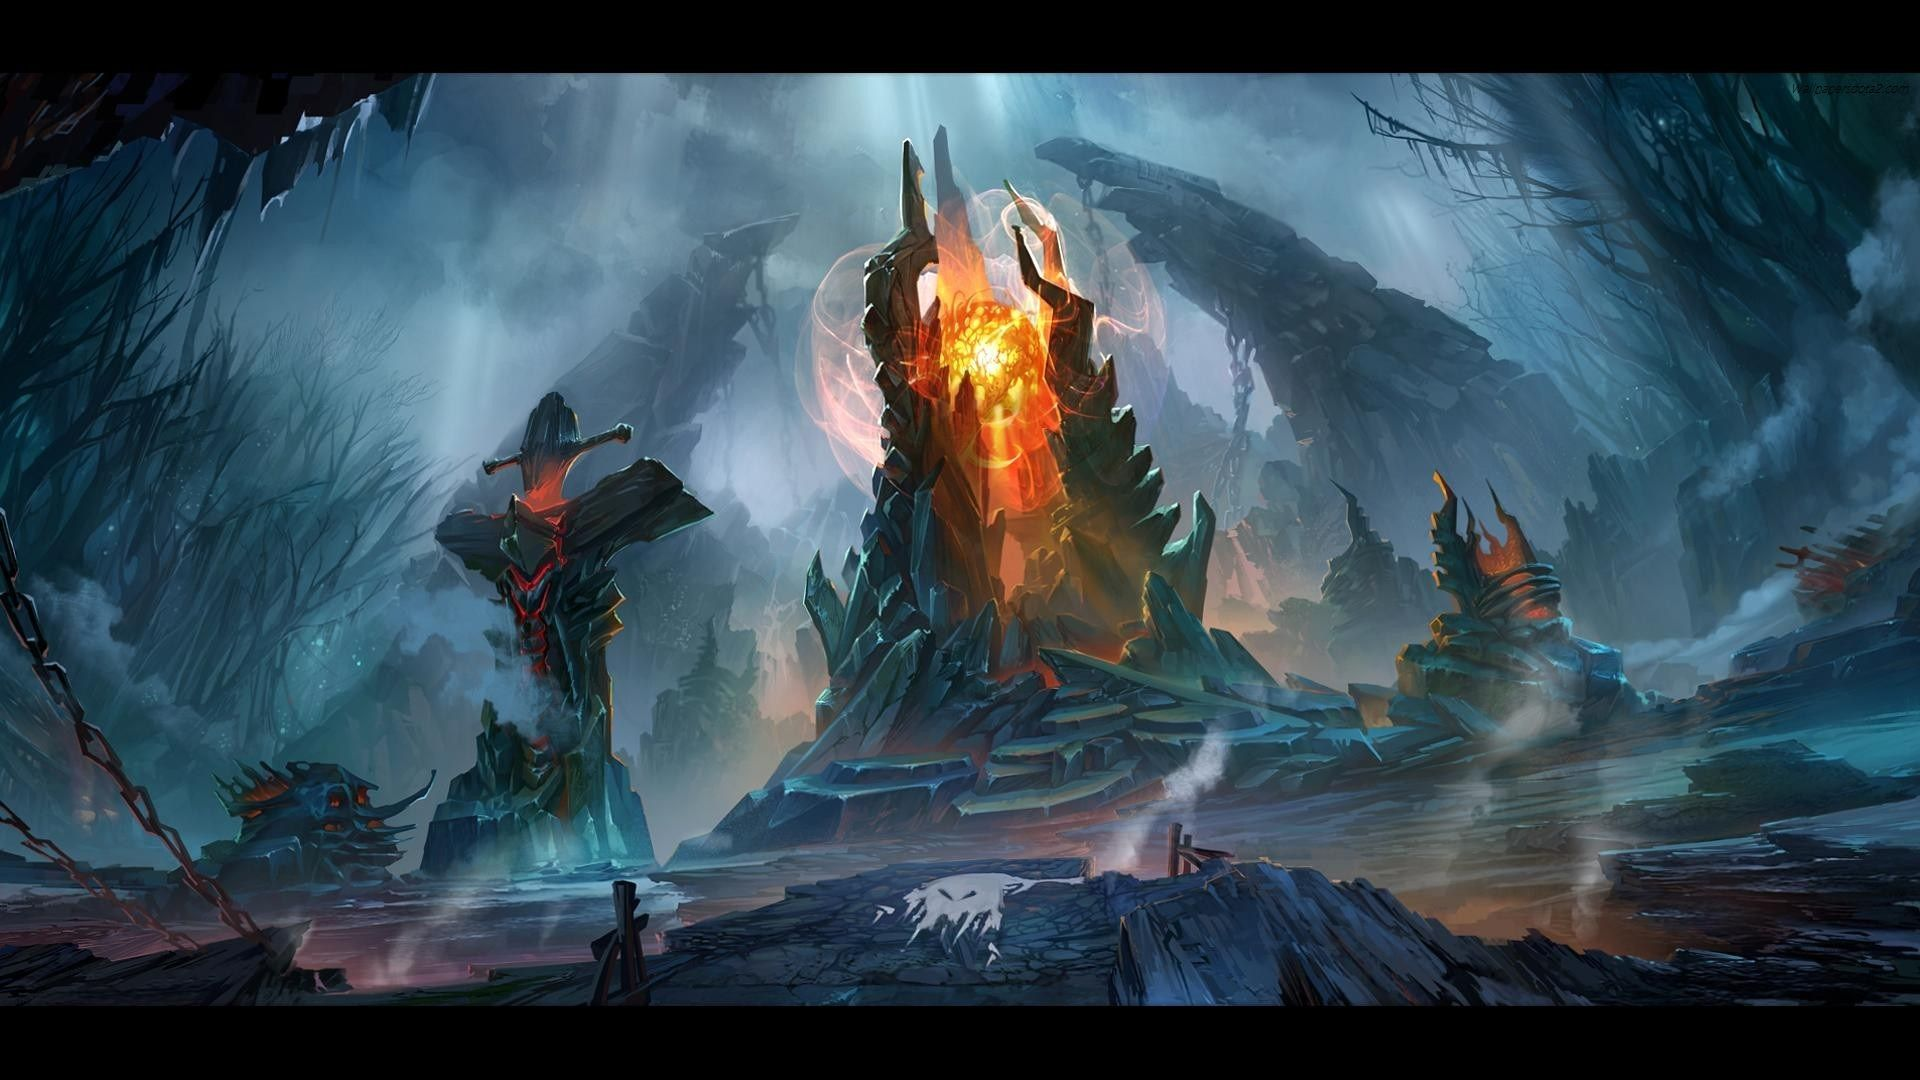 Dota2 wallpaper pc wallpapers gallery tactical gaming - Dota 2 The Dire Concept Art Upscaled Wallpaper Fresh Hd Wallpapers For Your Desktop